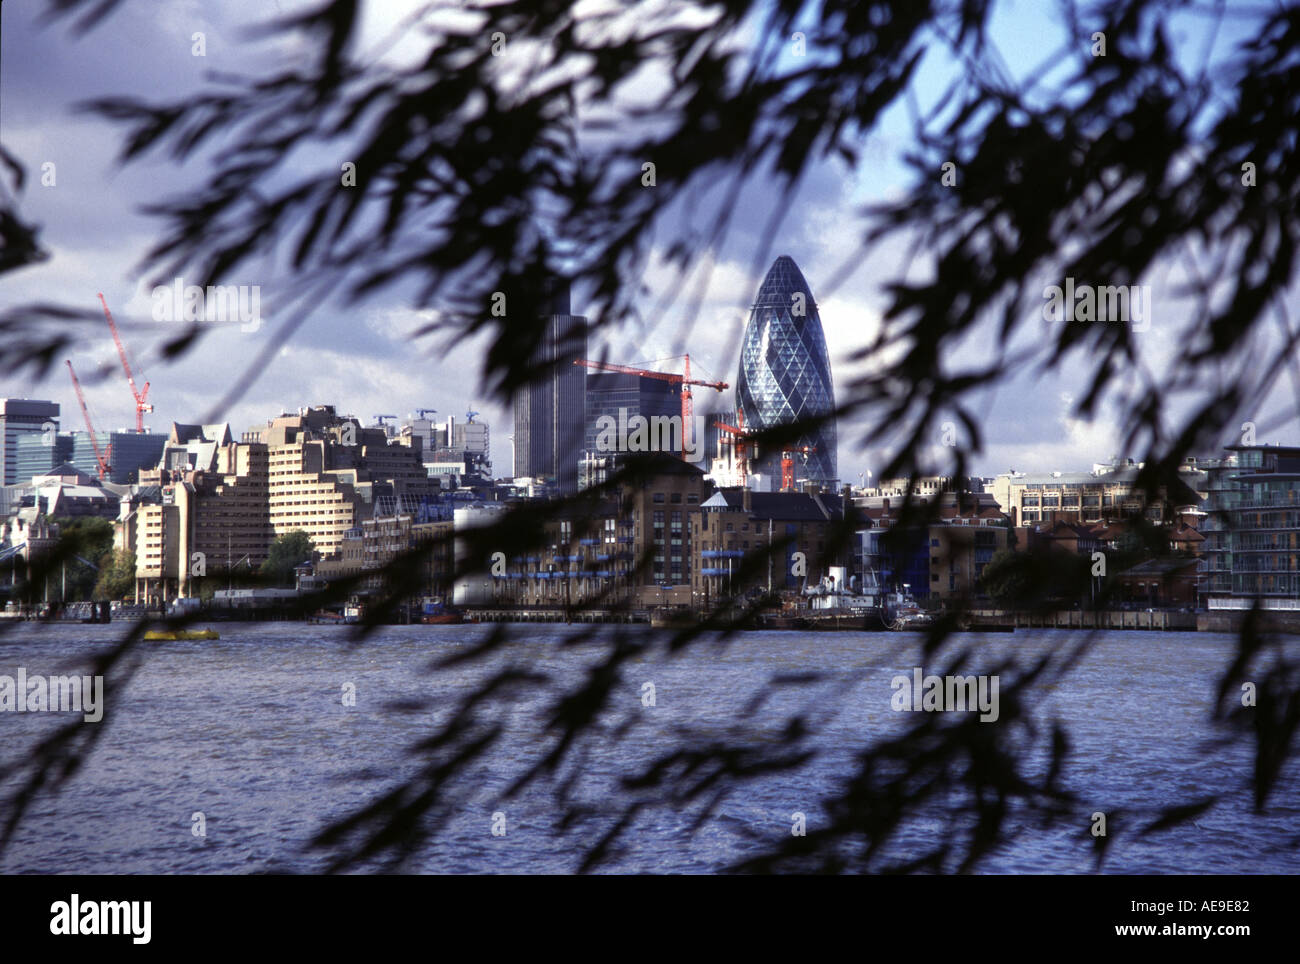 The Swiss Reinsurance Tower in London England popularly known as The Gherkin - Stock Image